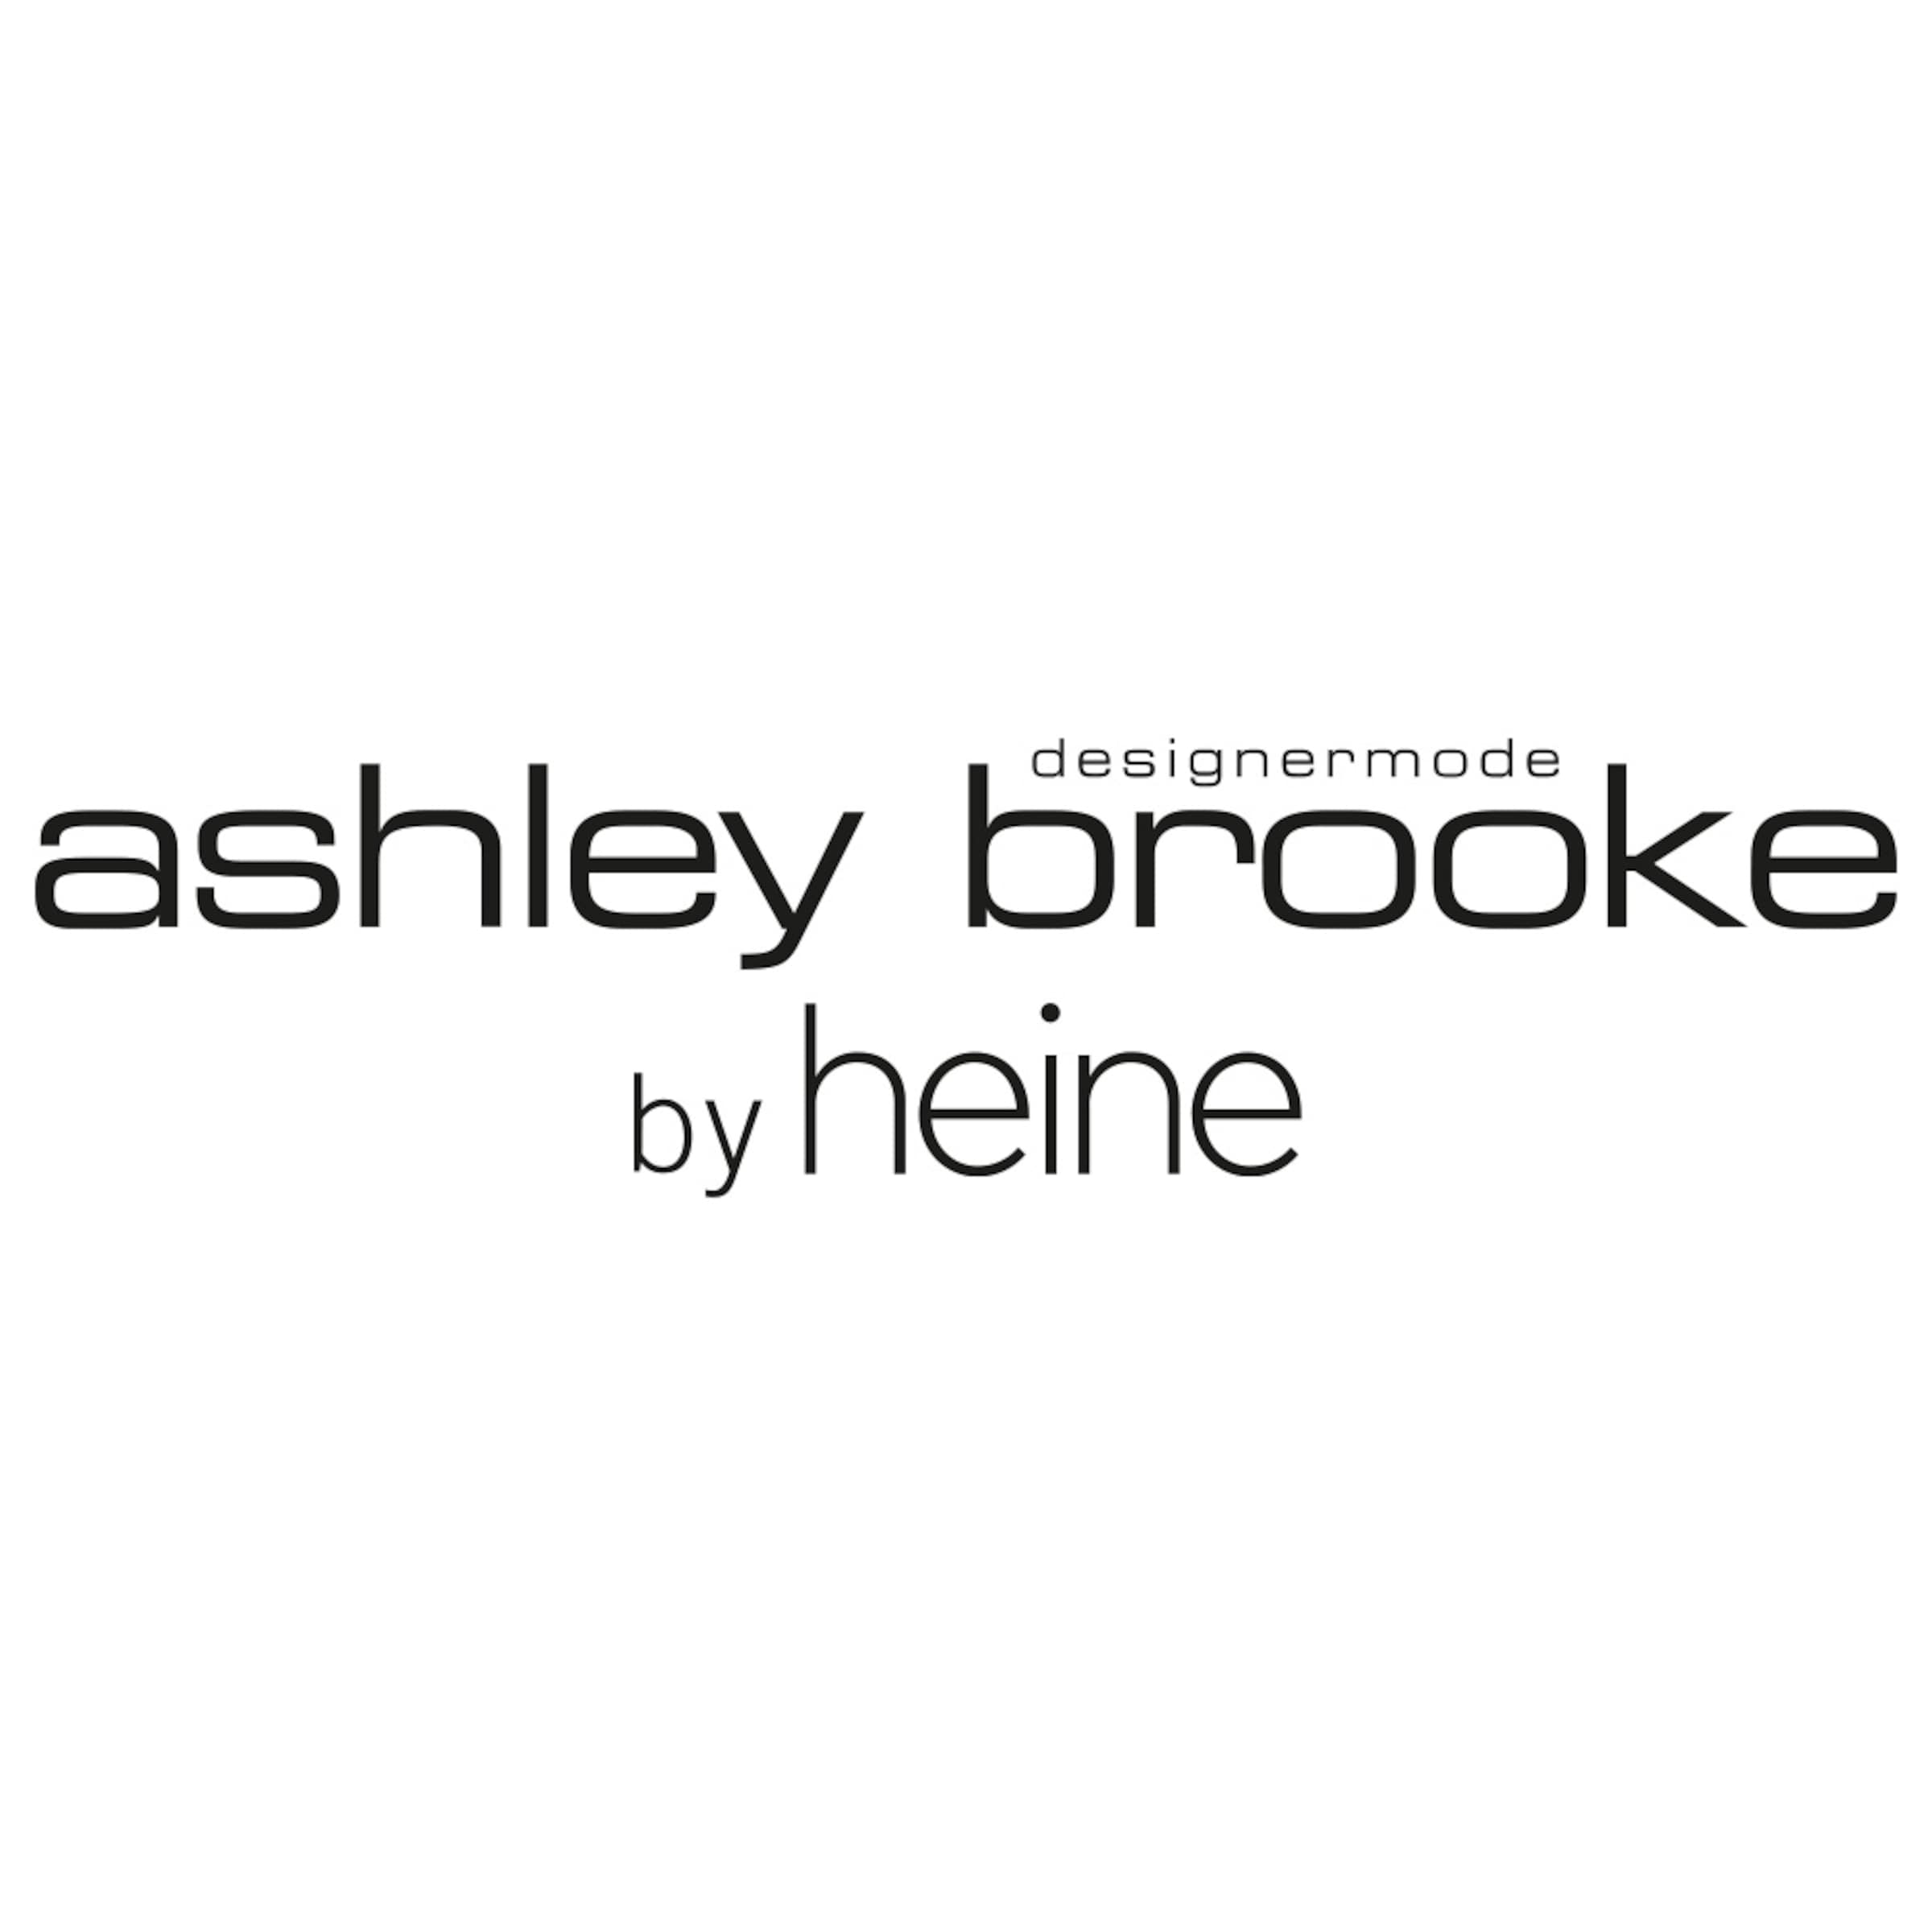 Ashley Brooke by heine